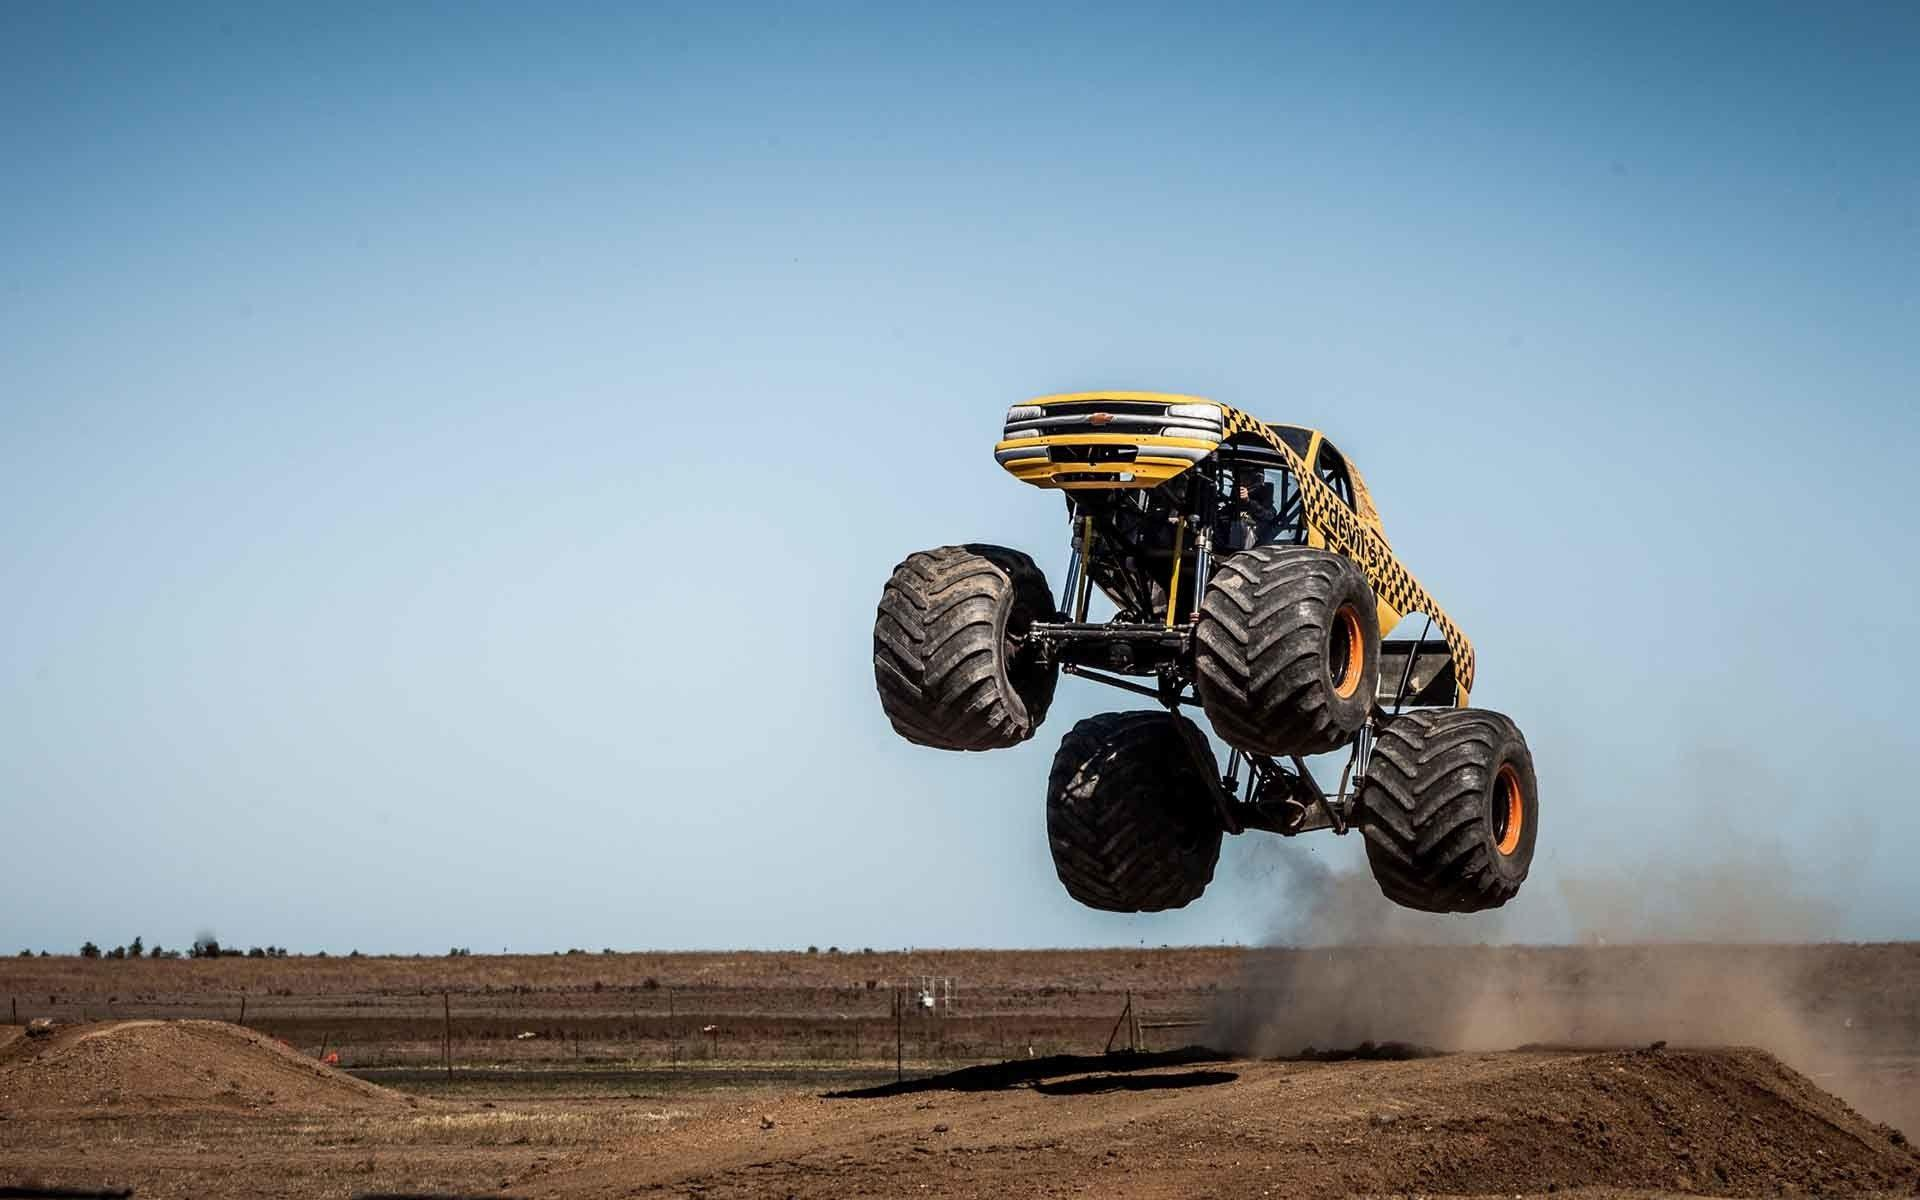 Monster Truck Full Hd Wallpapers ✓ Labzada Wallpapers